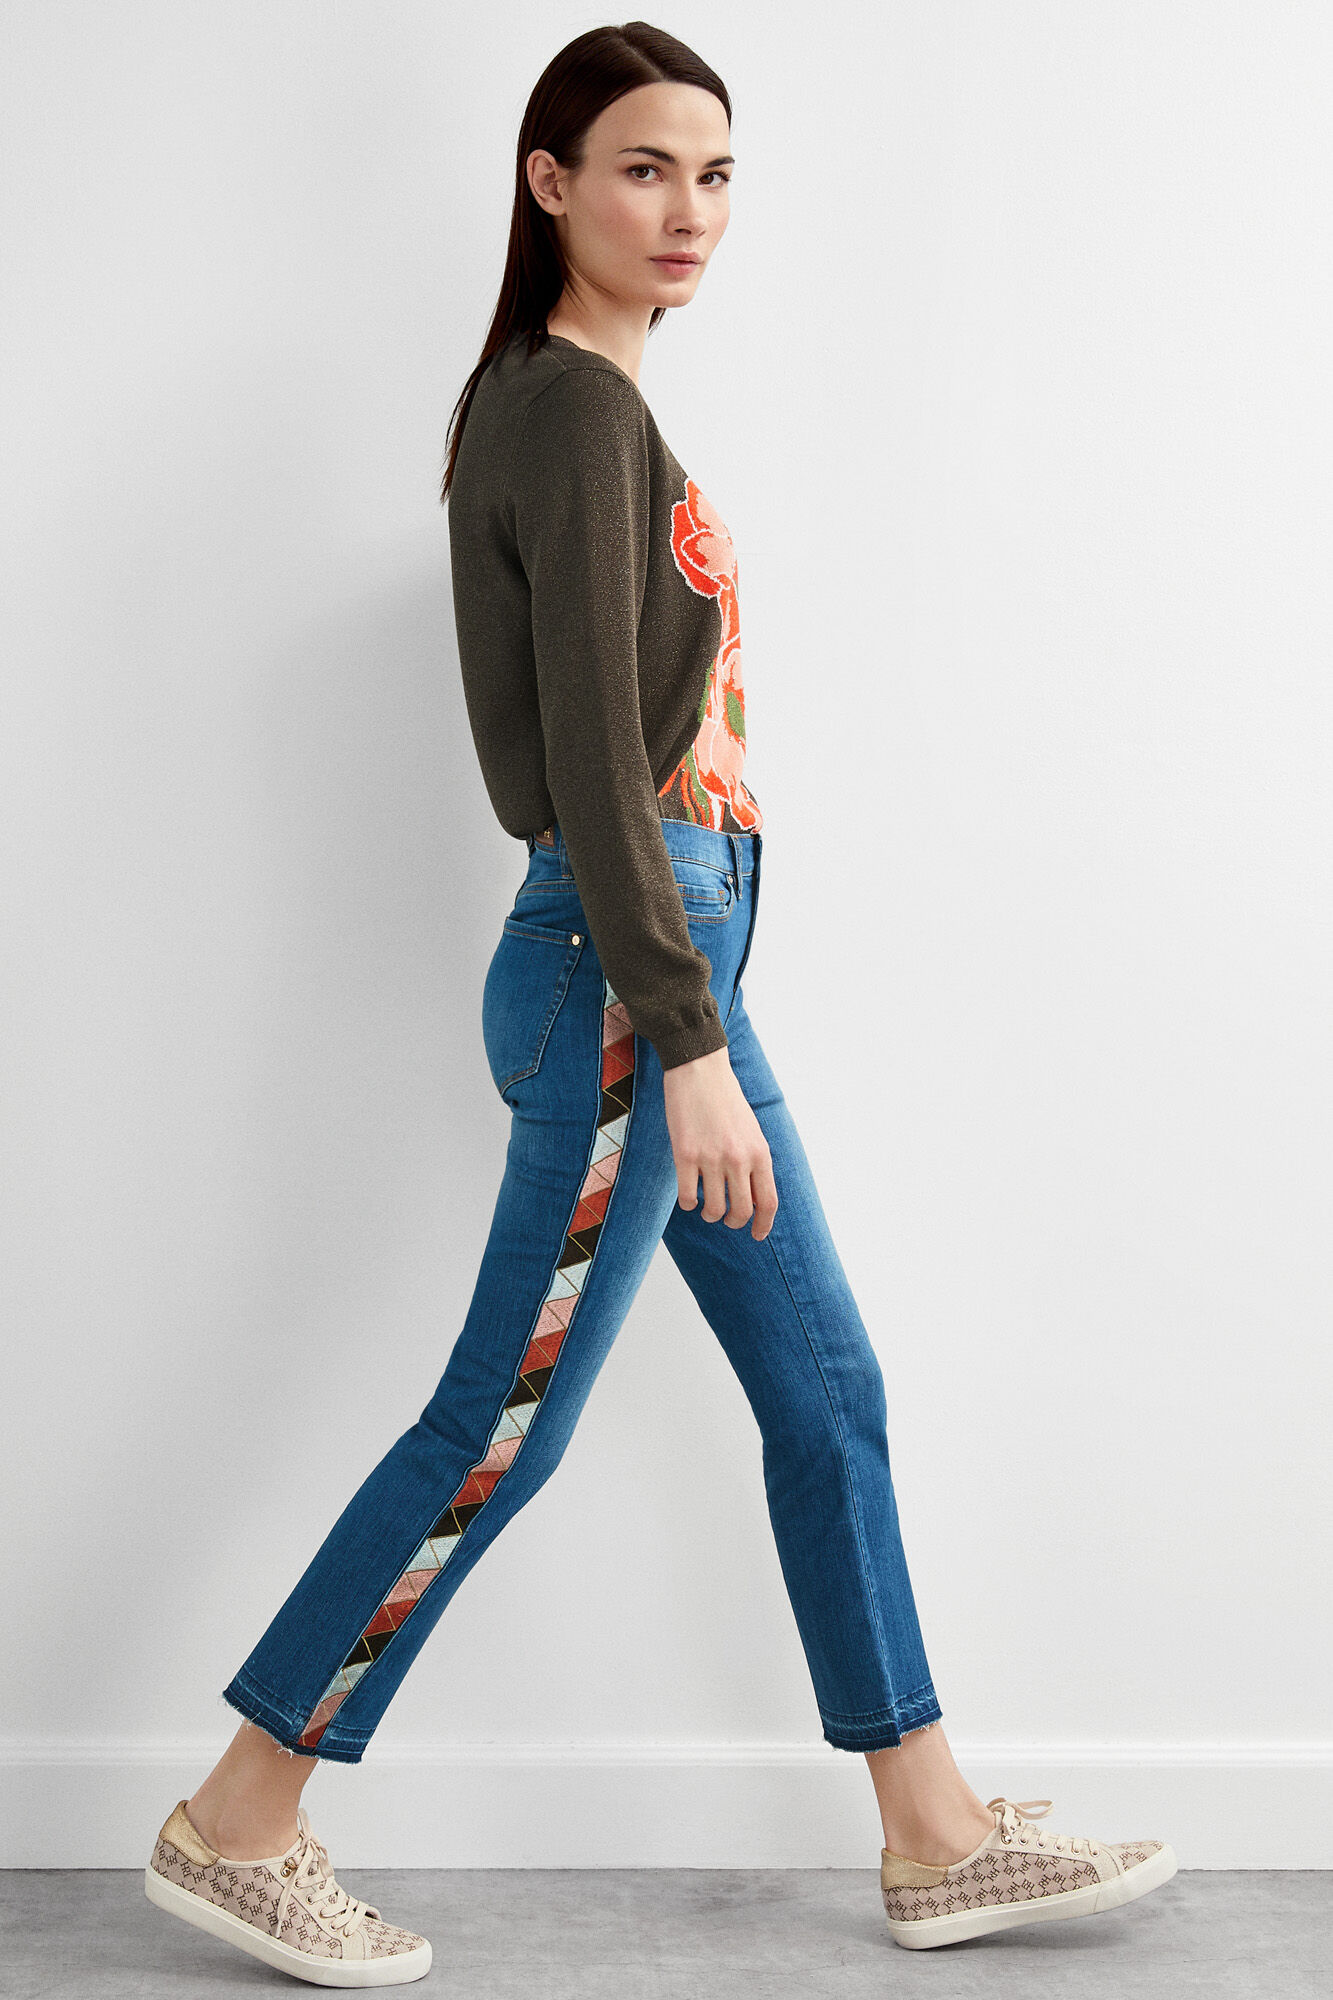 Fit Hierro Del Manamp; Woman Pedro JeansTrousers Straight Cropped oBrdCxe